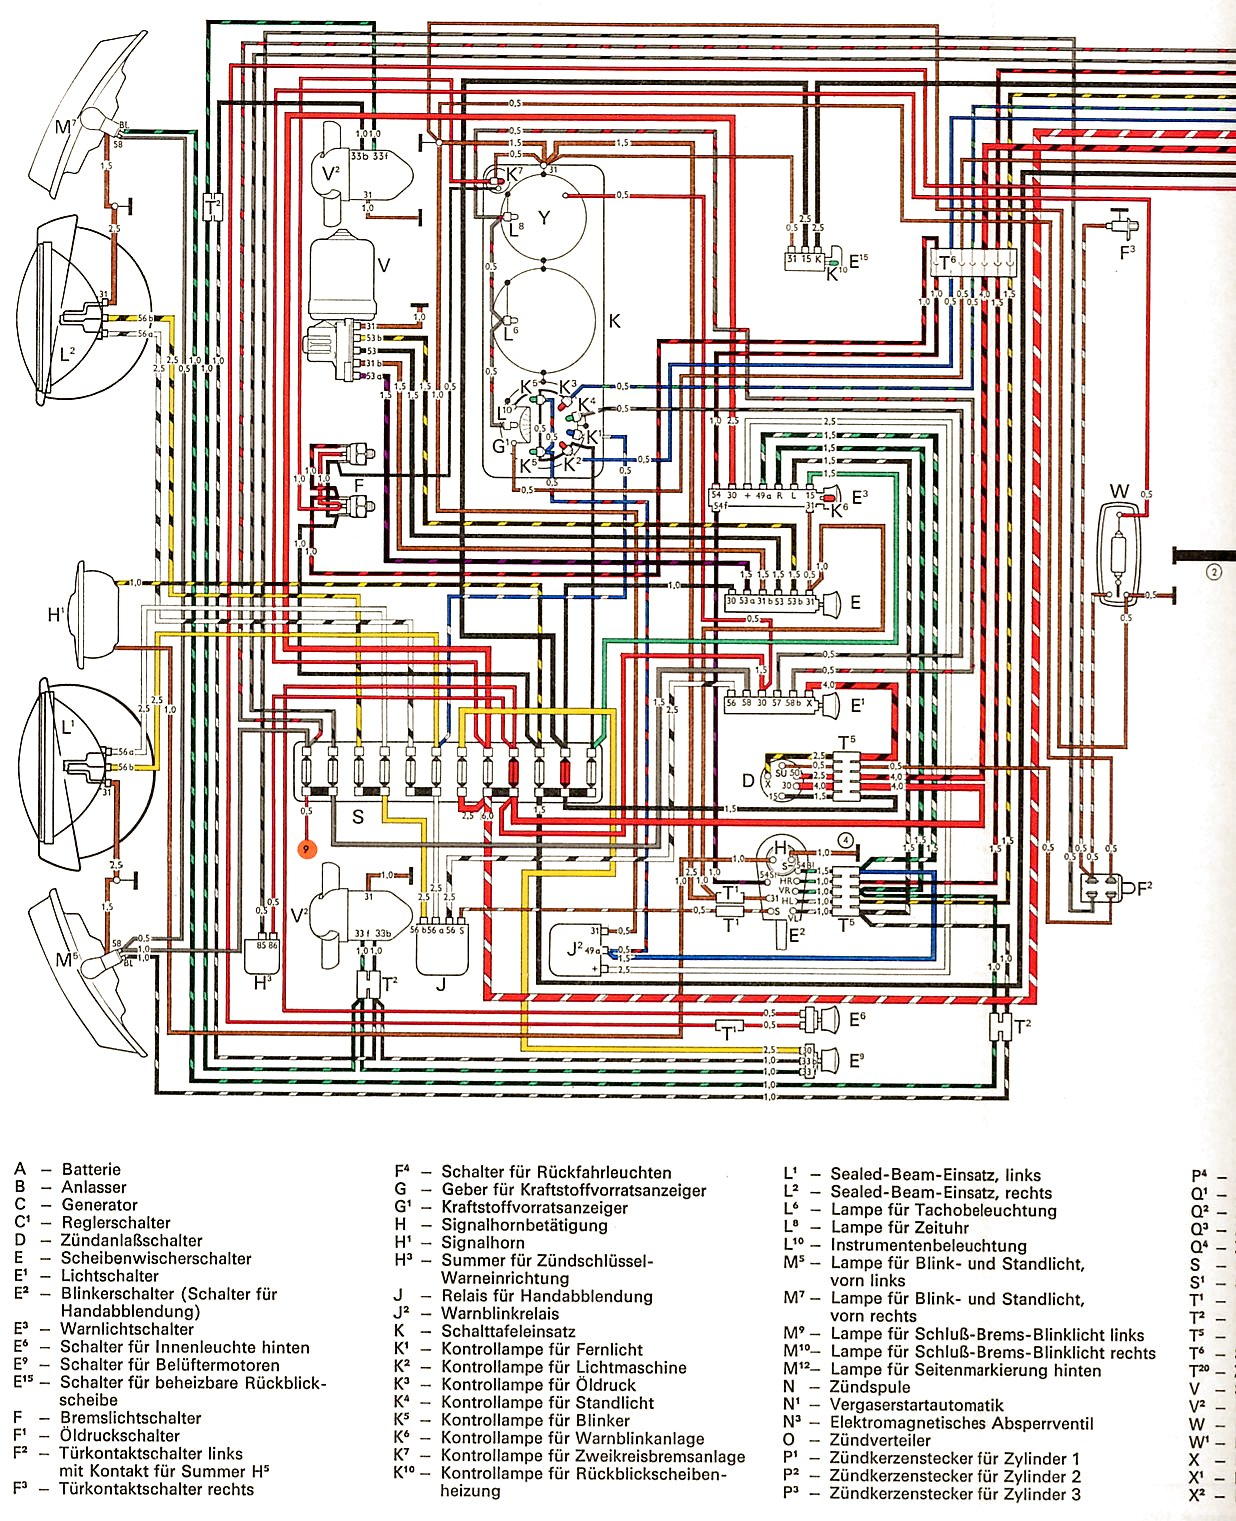 Vw Bus And Other Wiring Diagrams Volkswagen Beetle Com